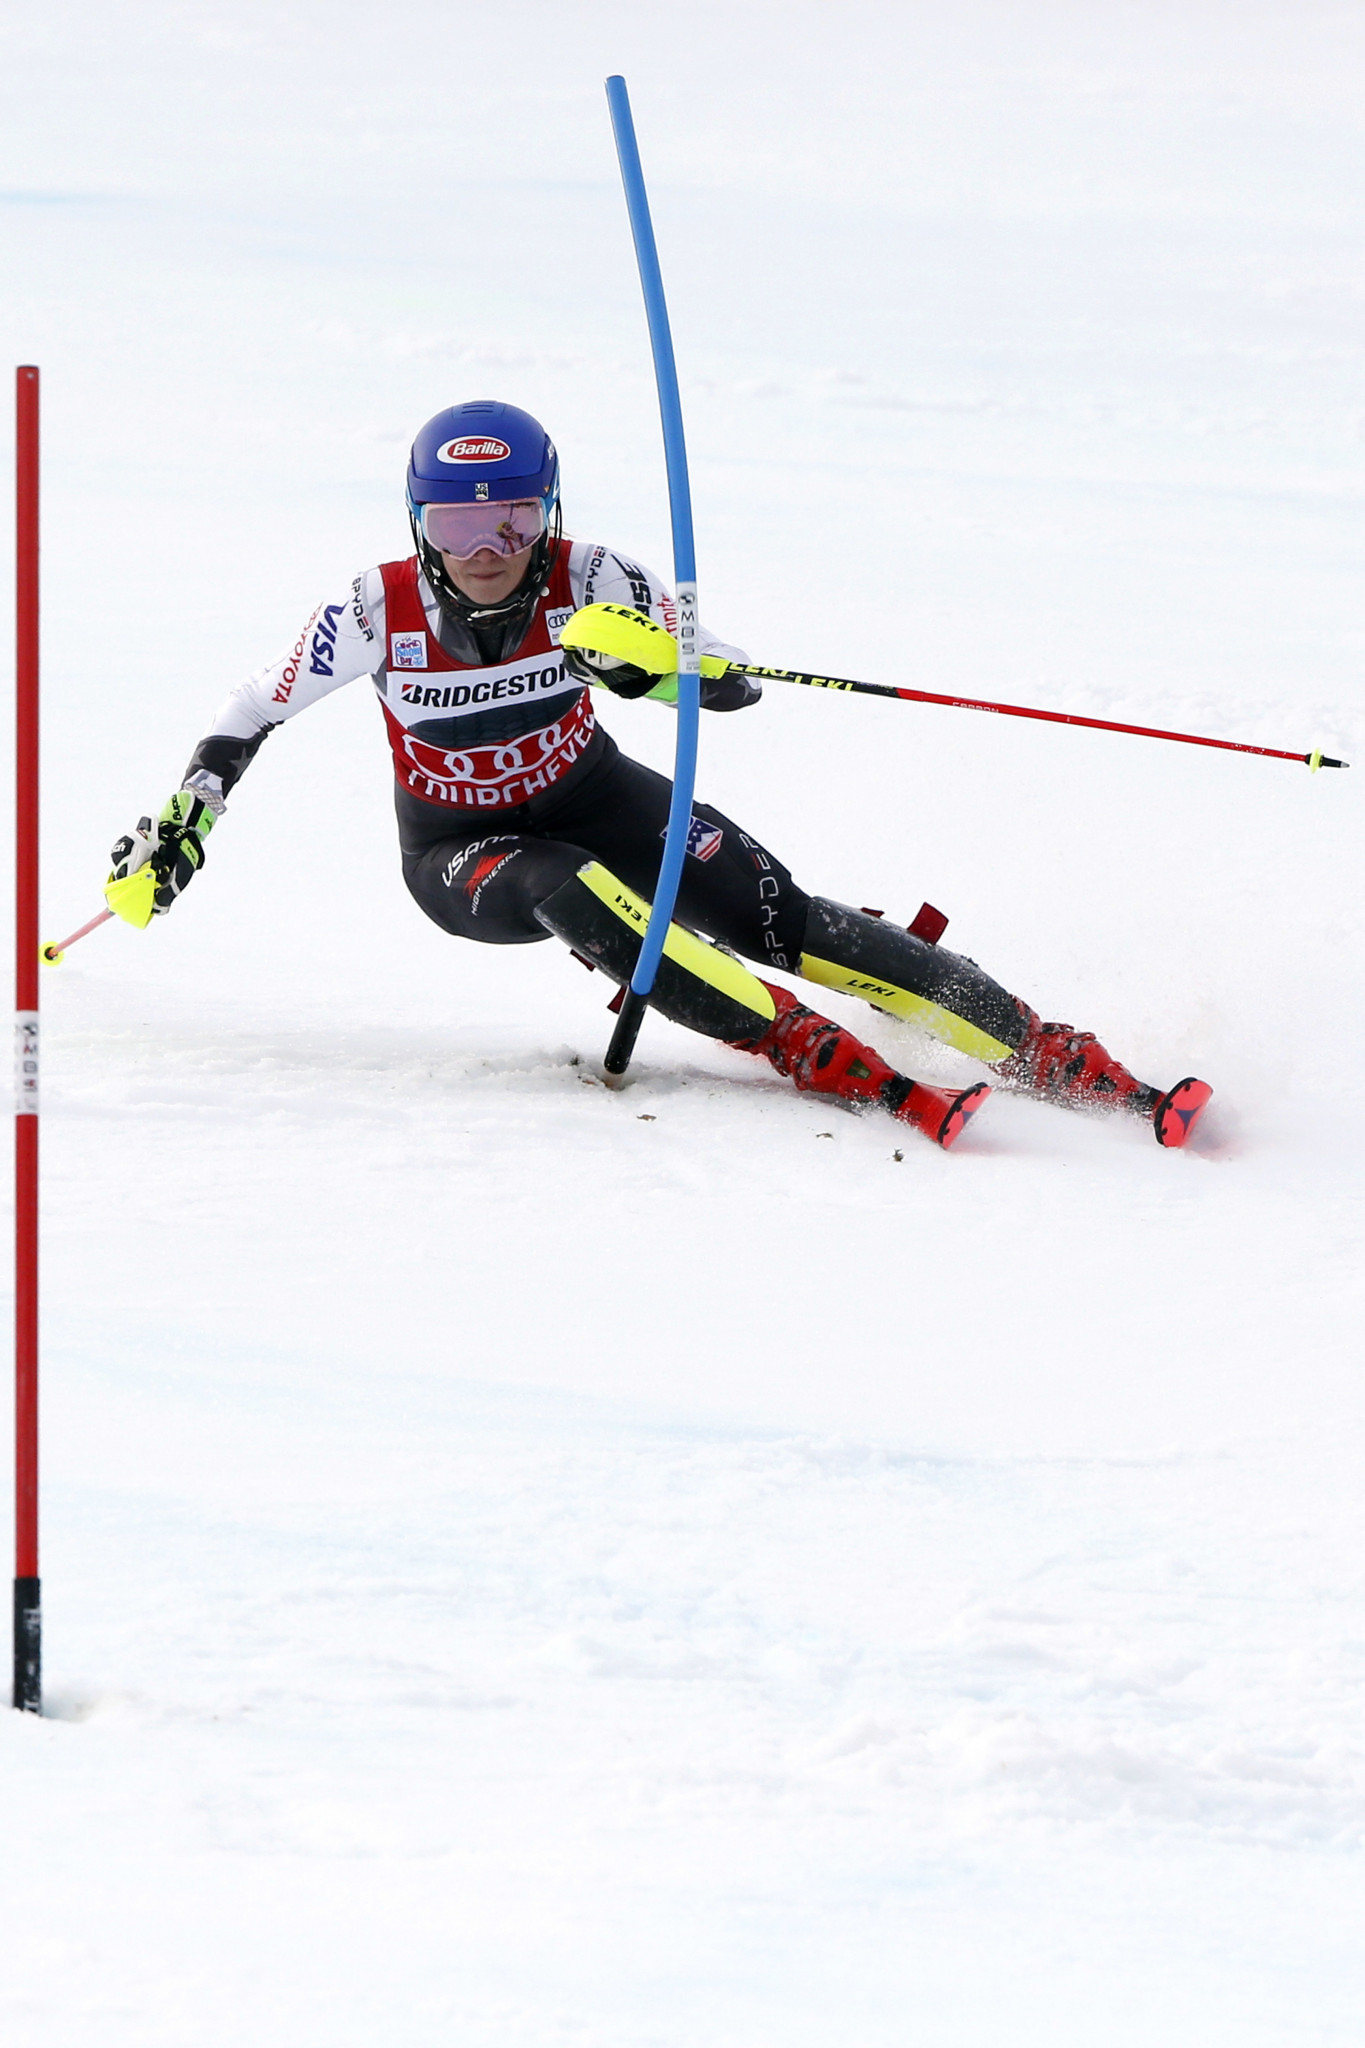 Mikaela Shiffrin's win today sees her move 501 points clear at the top of the overall World Cup rankings ©Getty Images